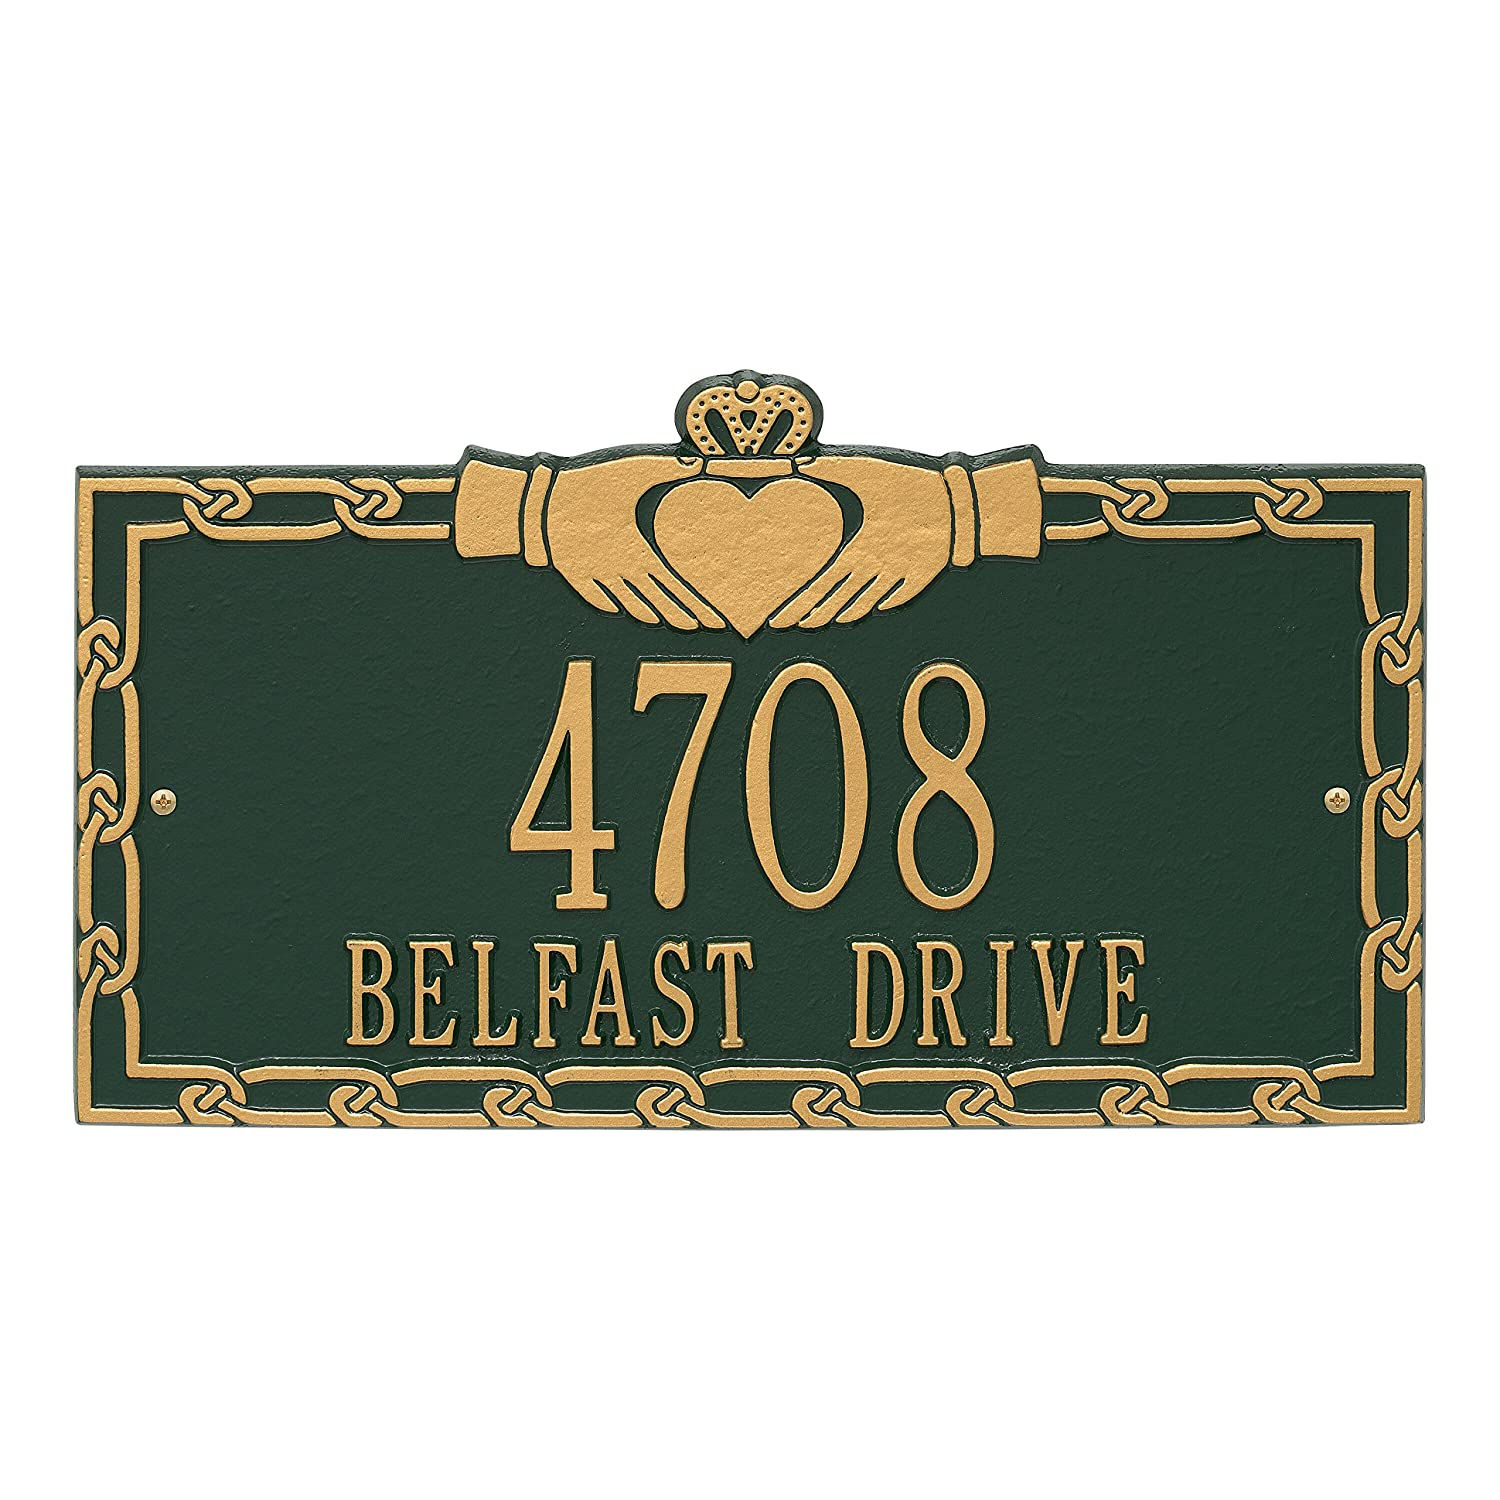 Whitehall Personalized Indoor/Outdoor Cast Irish Claddagh Address Plaque Sign with House Number and Street Name (Antique Copper) Whitehall Products